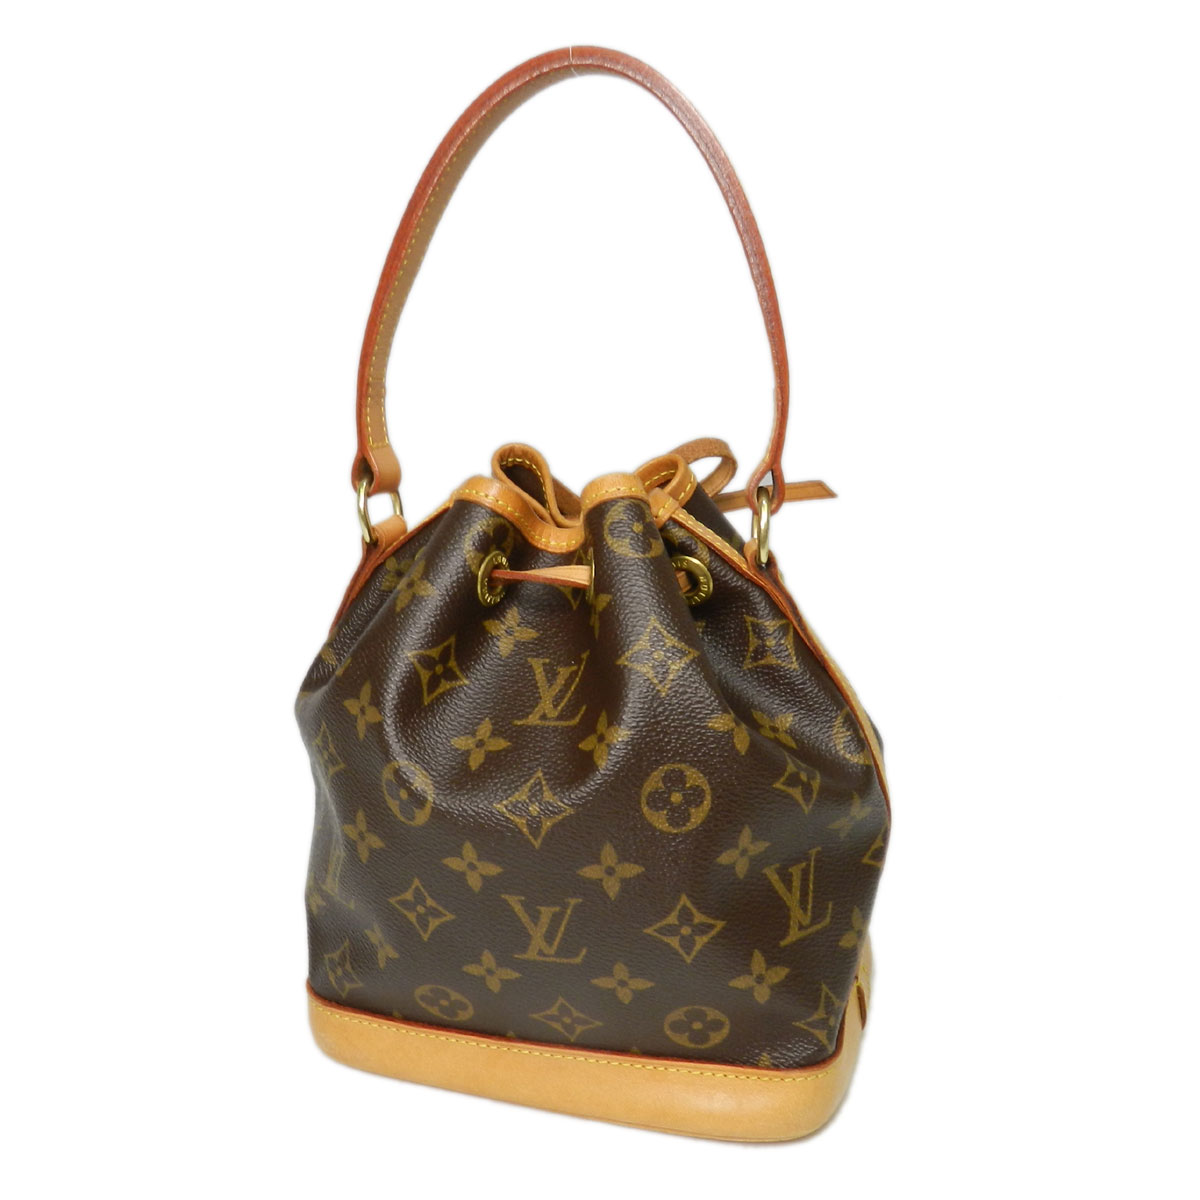 Image Result For Louis Vuitton Handbags Cheapest